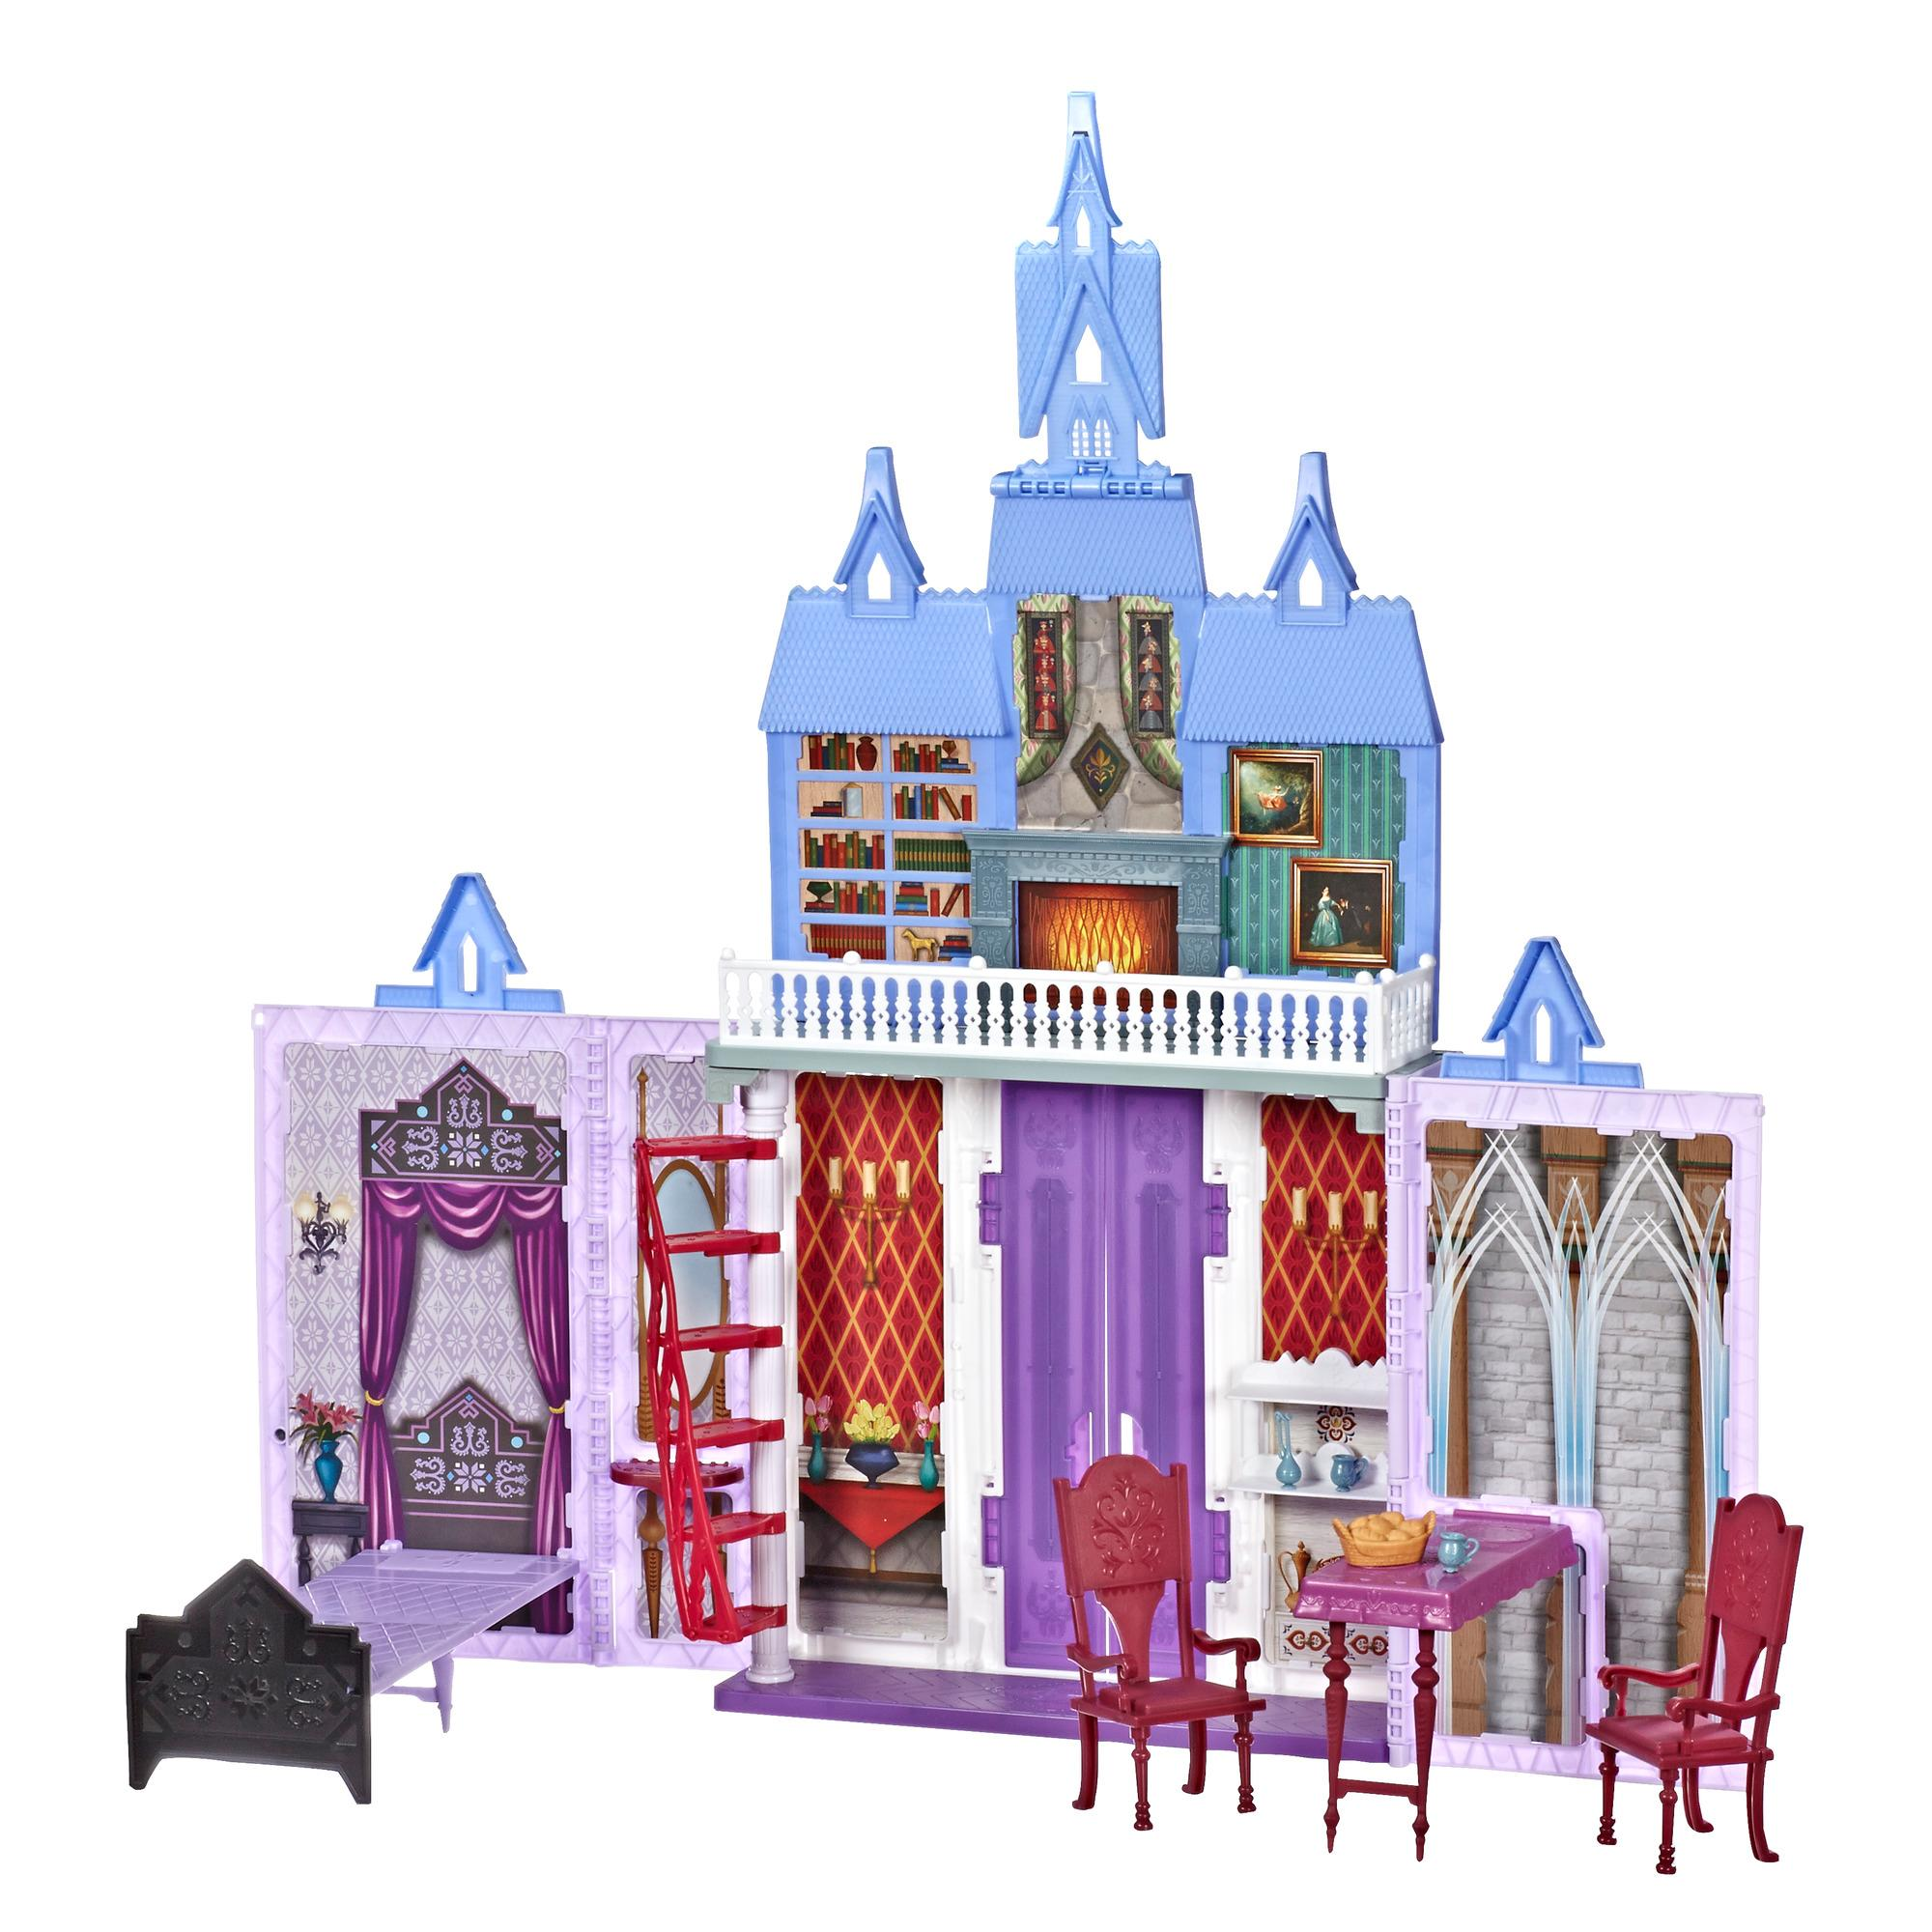 Disney Frozen Fold and Go Arendelle Castle Playset Inspired by Disney's Frozen 2 Movie